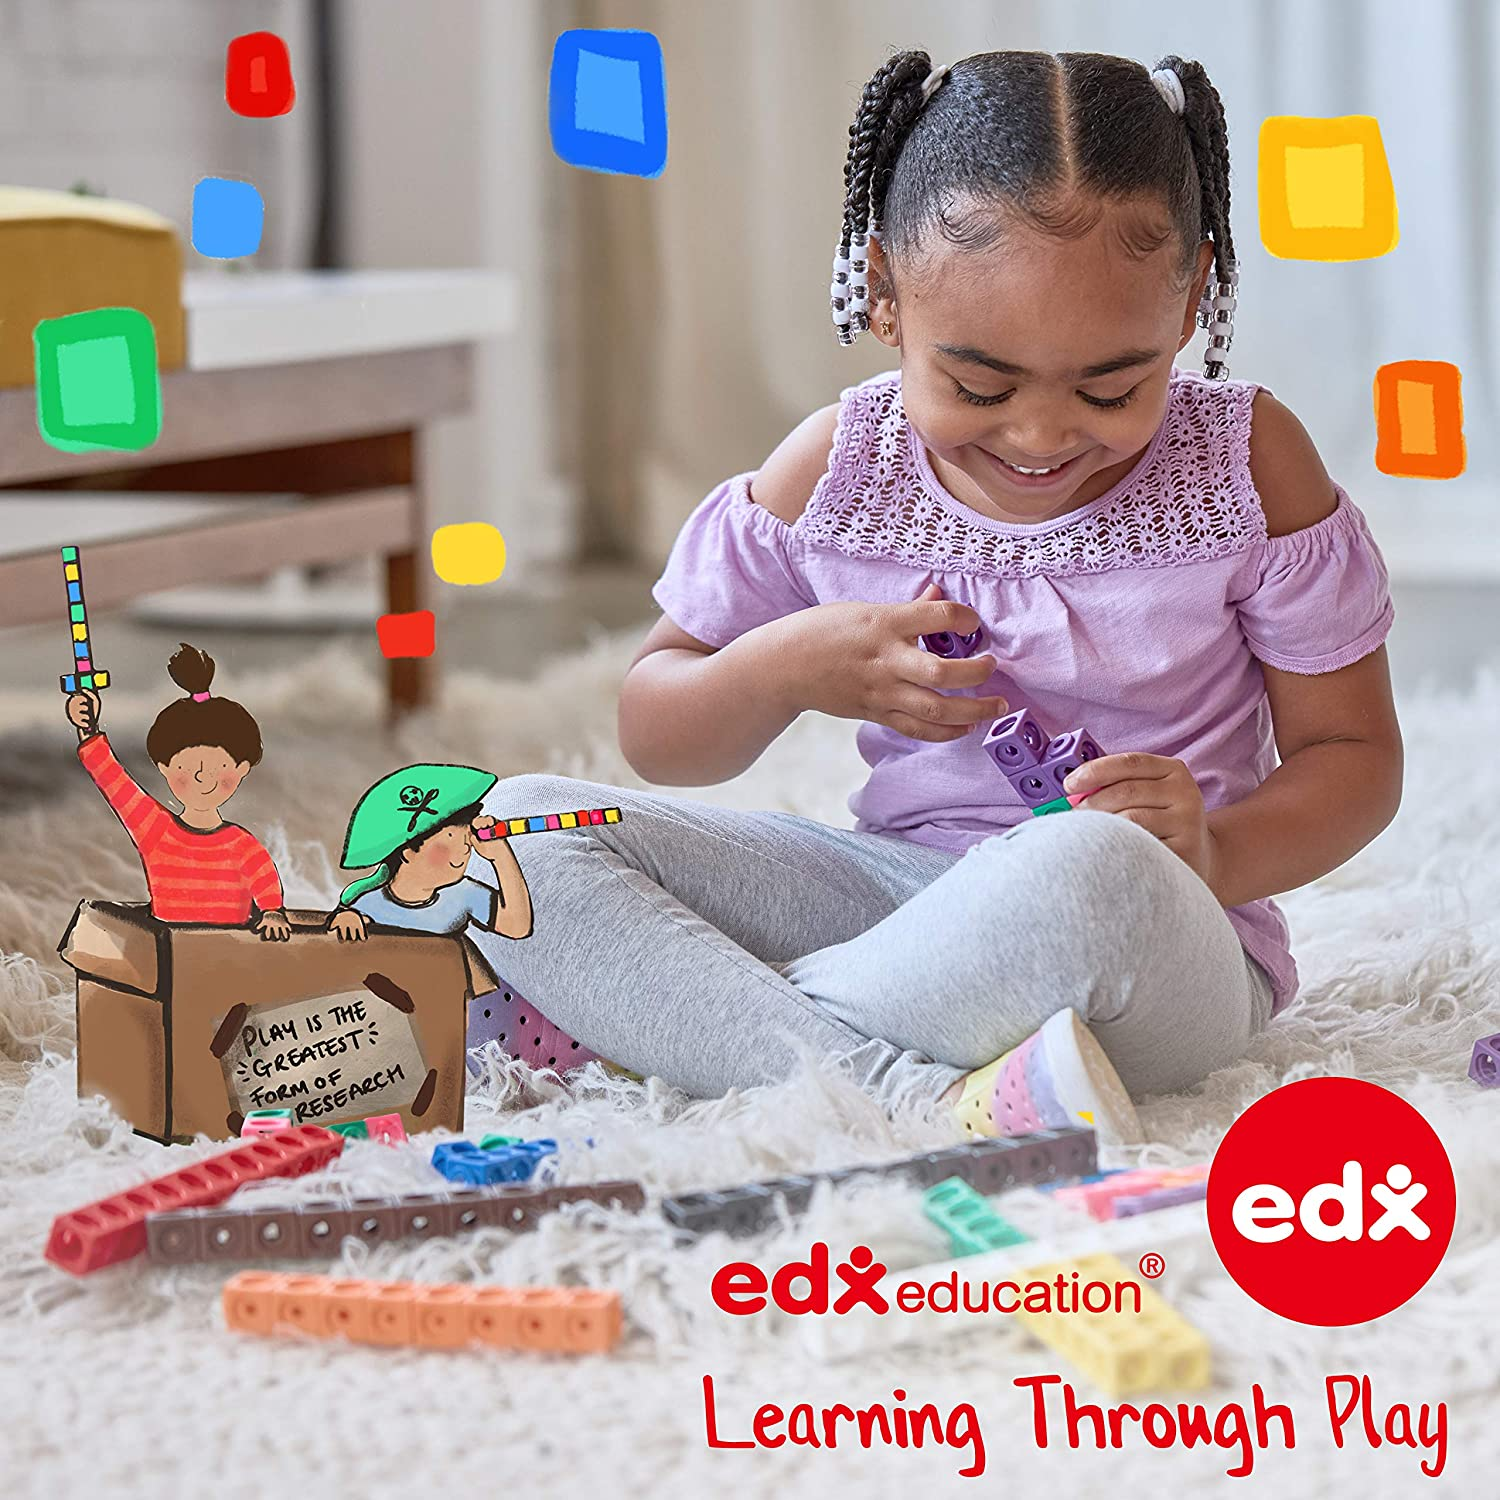 6 Piece Obstacle Course For Kids Edx Education Step-A-Trail Build Coordination Indoor and Outdoor Logs /& Stumps Physical and Imaginative Play